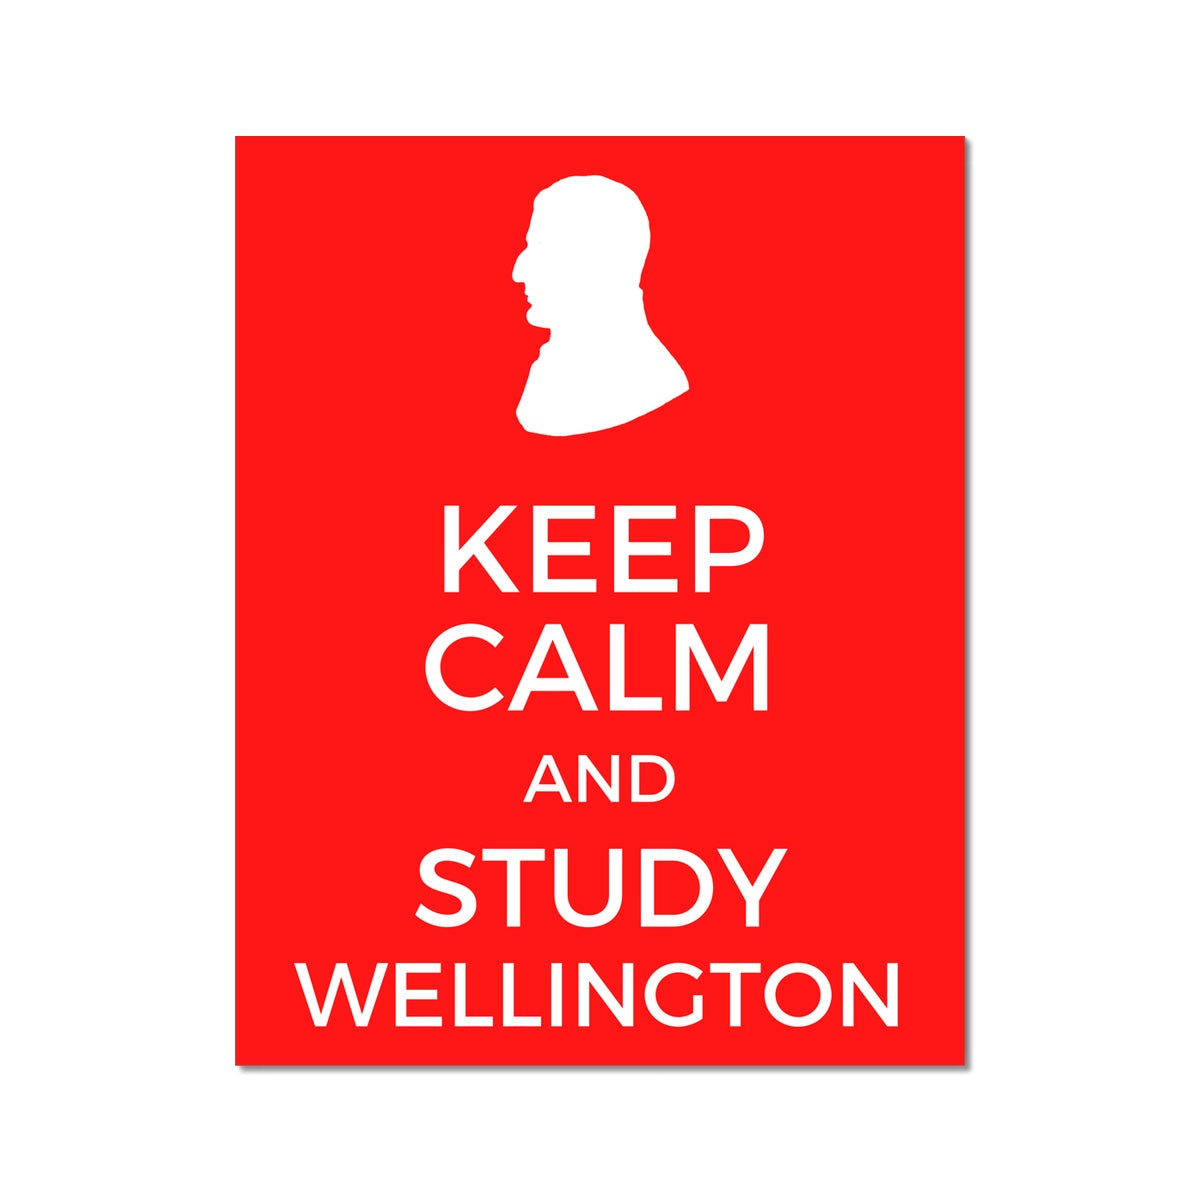 Keep Calm and Study Wellington Poster - Napoleonic Impressions